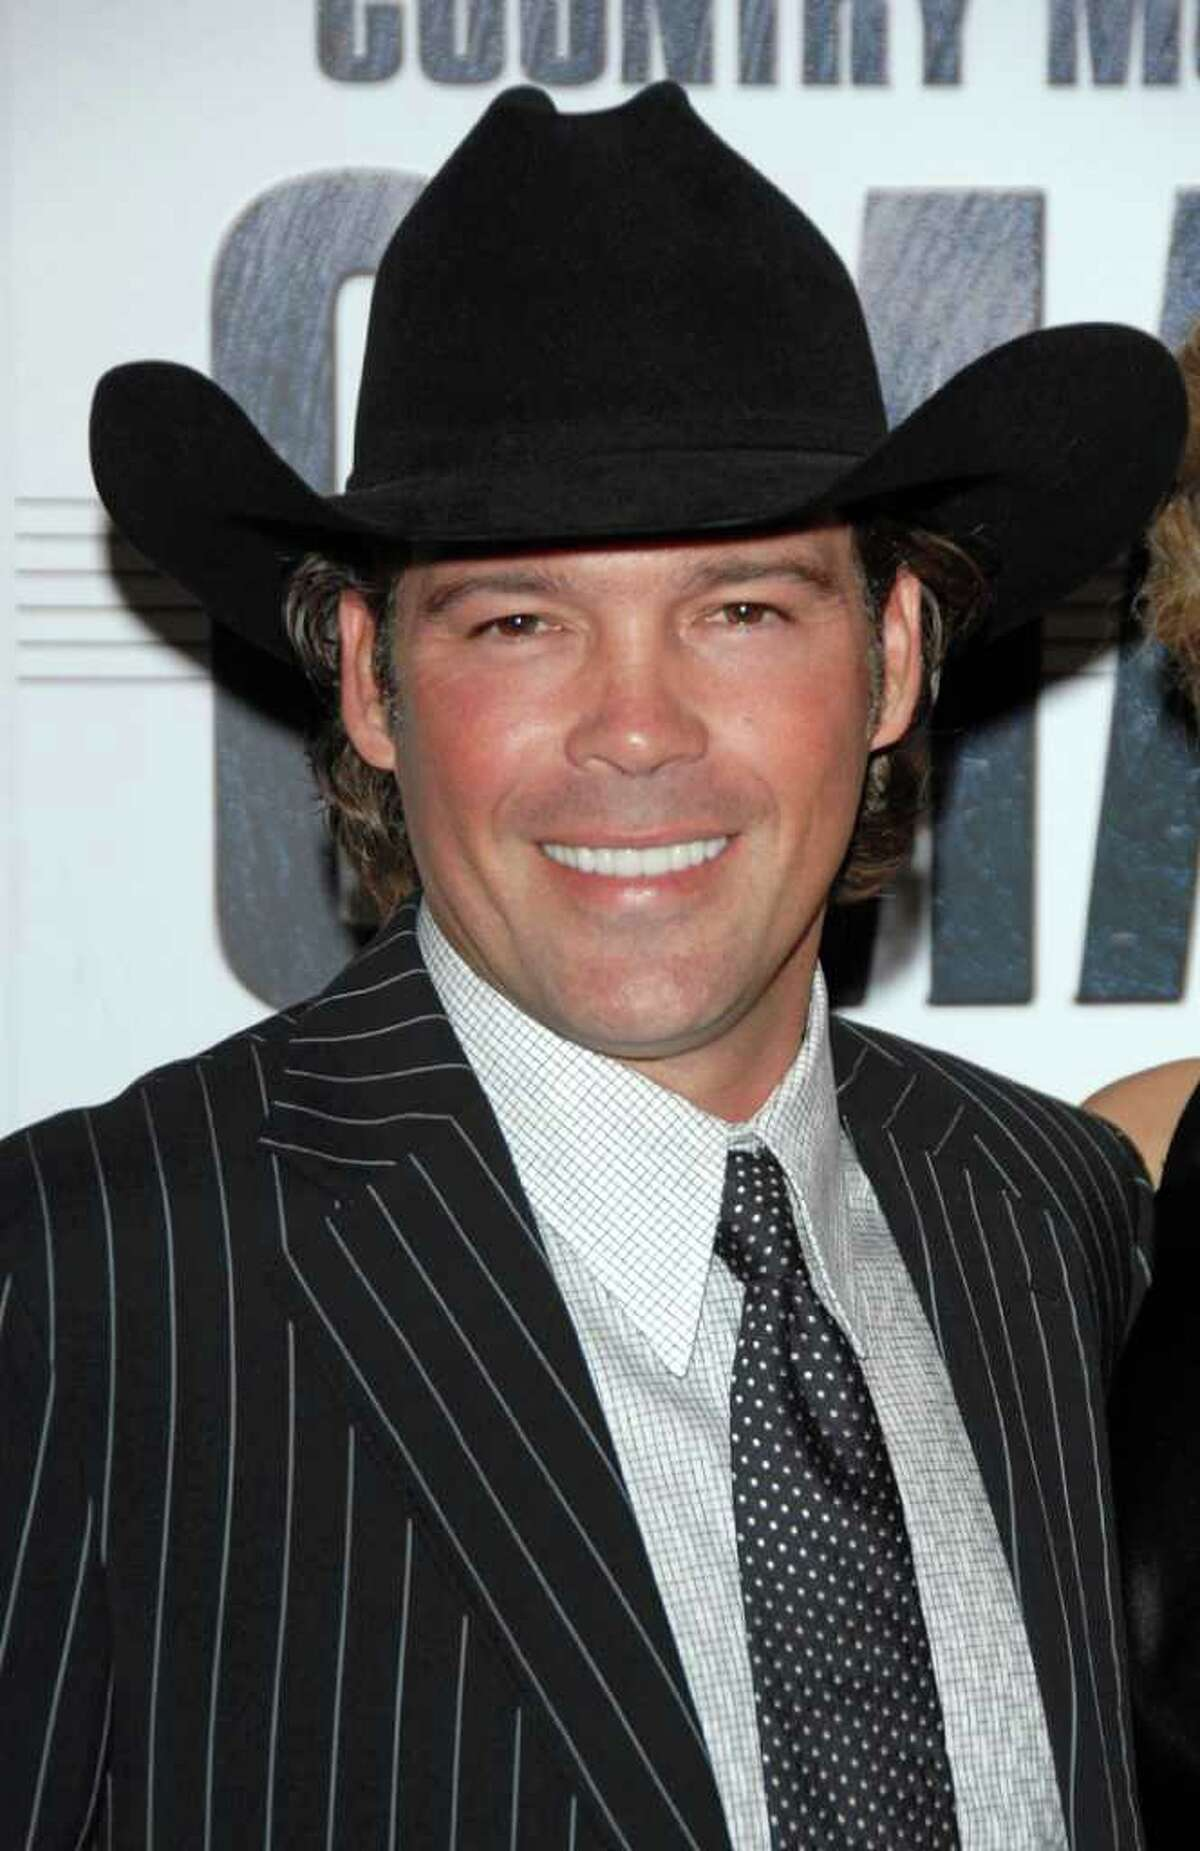 Clay Walker is a country musician from Beaumont and Vidor. Staying with his roots, Walker is often seen in a cowboy hat. (AP Photo/Peter Kramer)